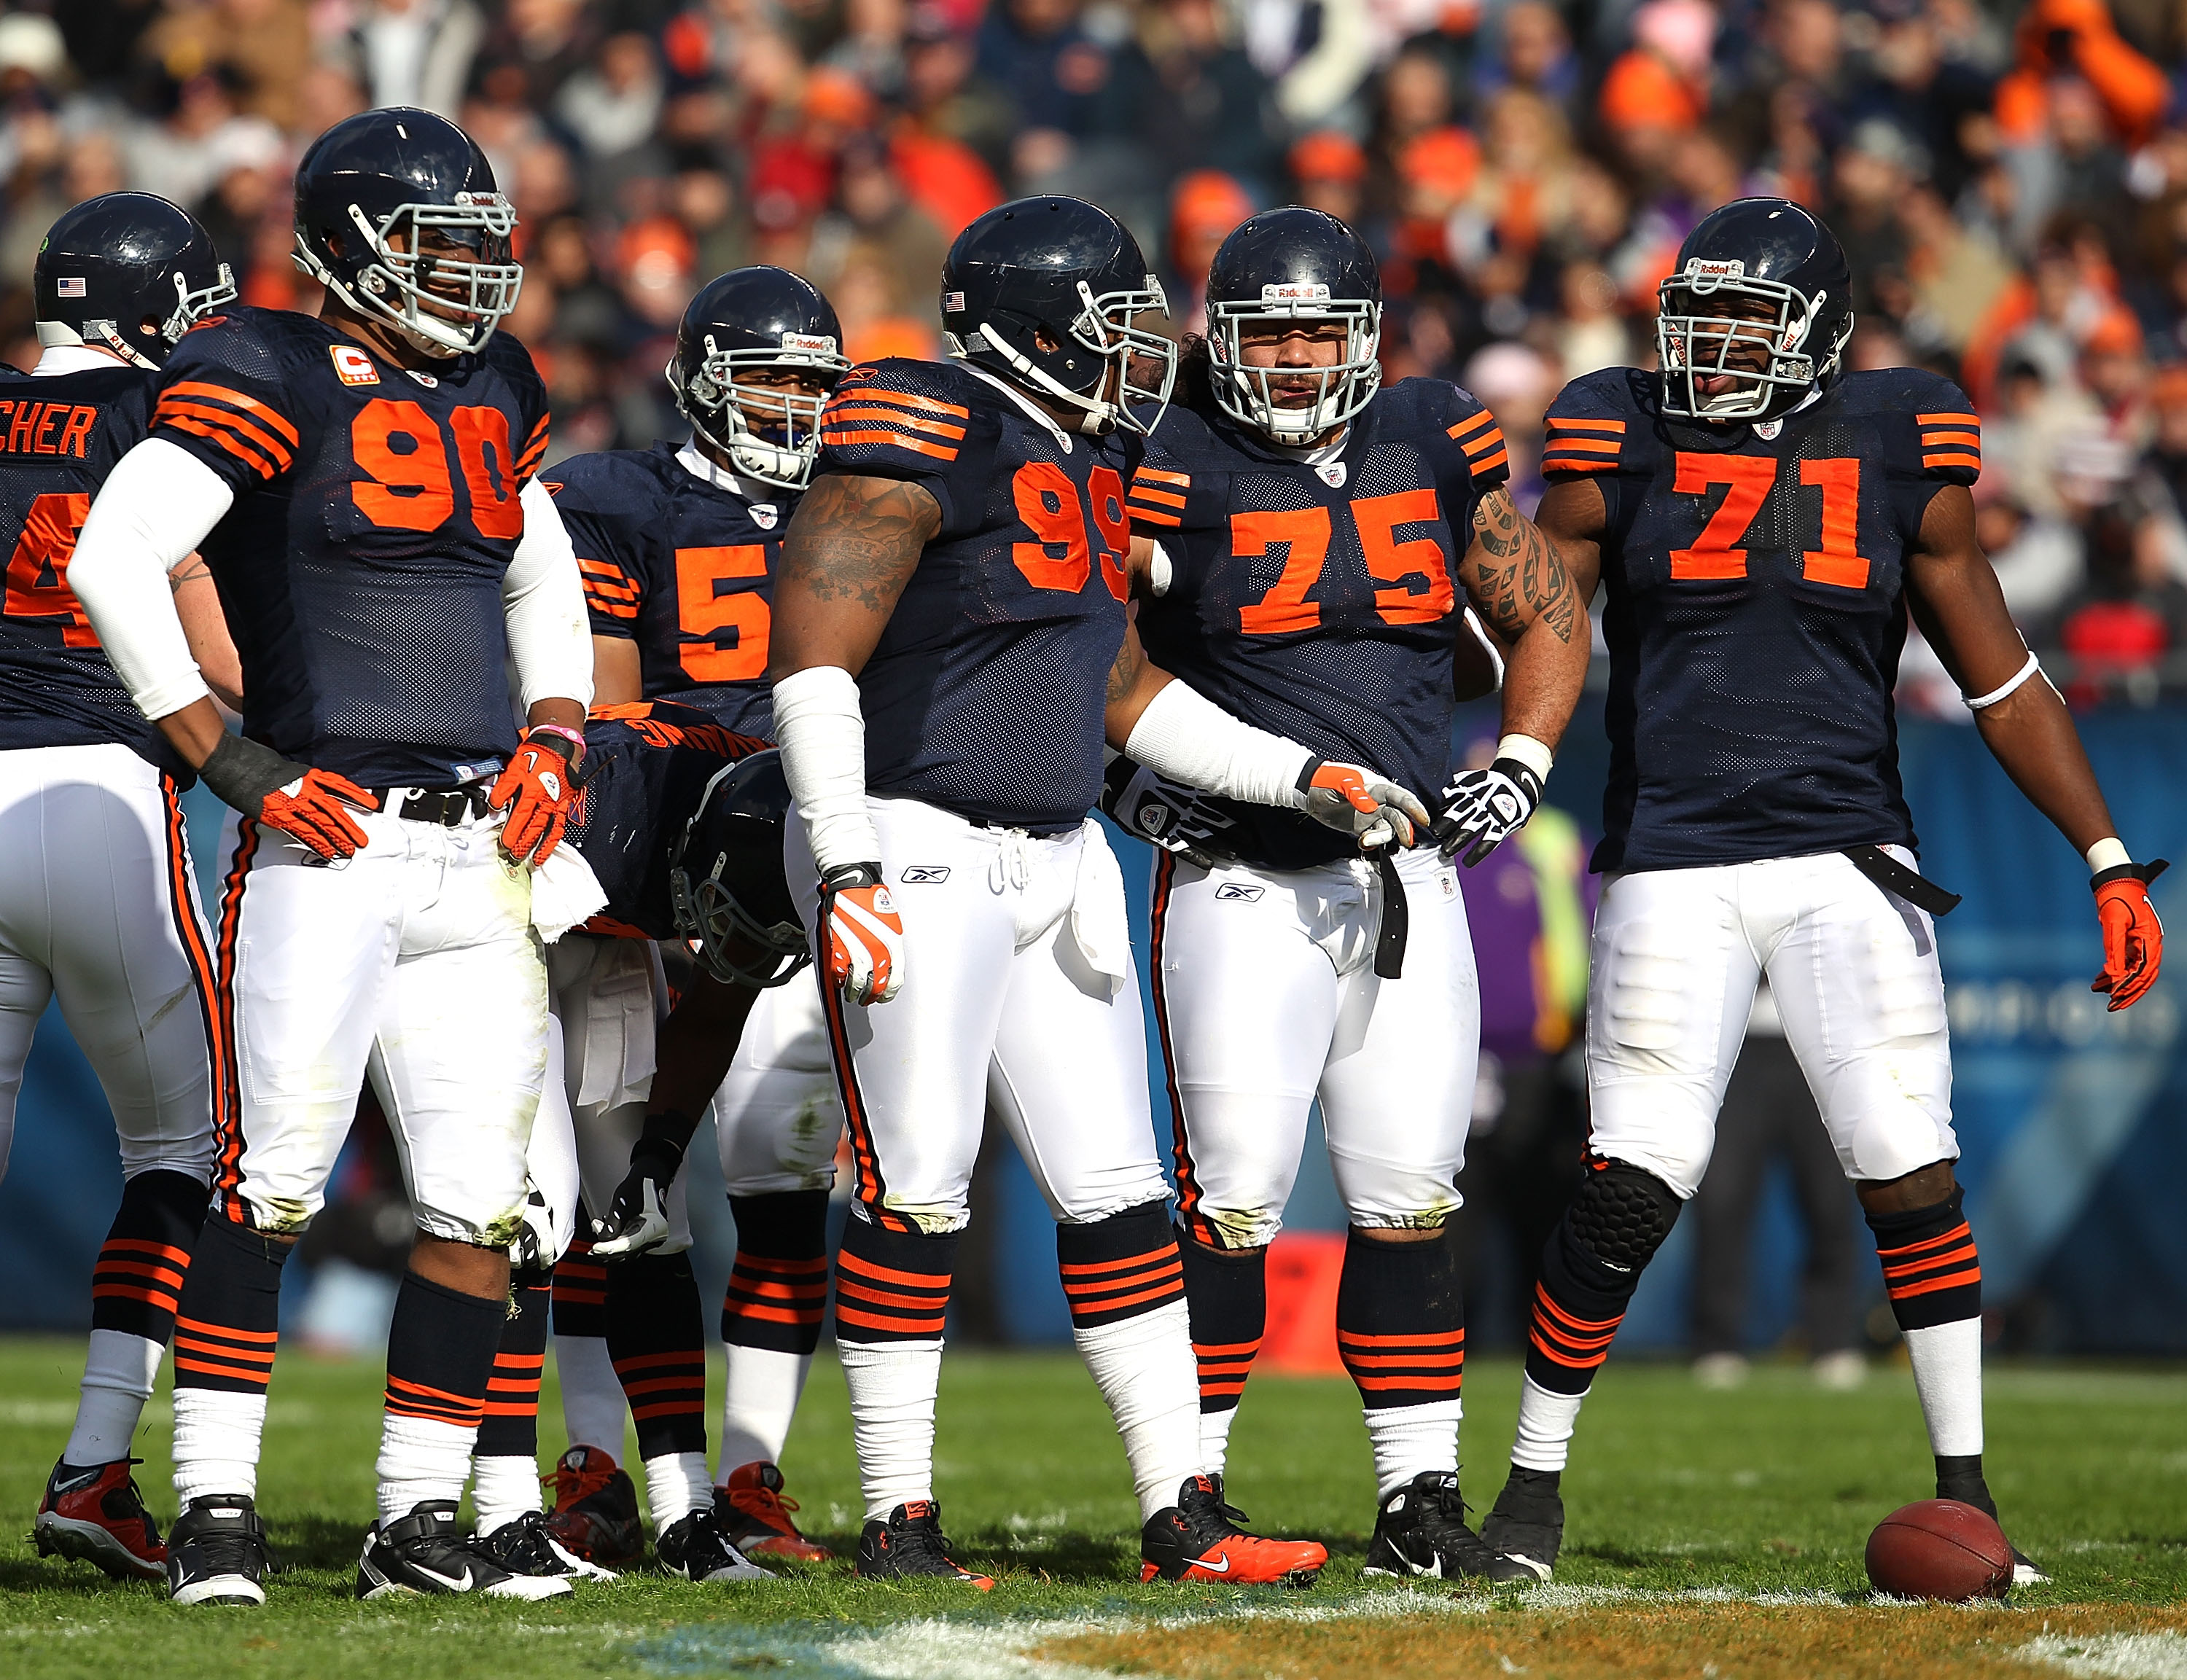 CHICAGO - NOVEMBER 14: Members of the Chicago Bear defense including (L-R) Julius Peppers #90, Lance Briggs #55, Marcus Harrison #99, Matt Toeaina #75 and Israel Idonije #71 await the start of play against the Minnesota Vikings at Soldier Field on Novembe